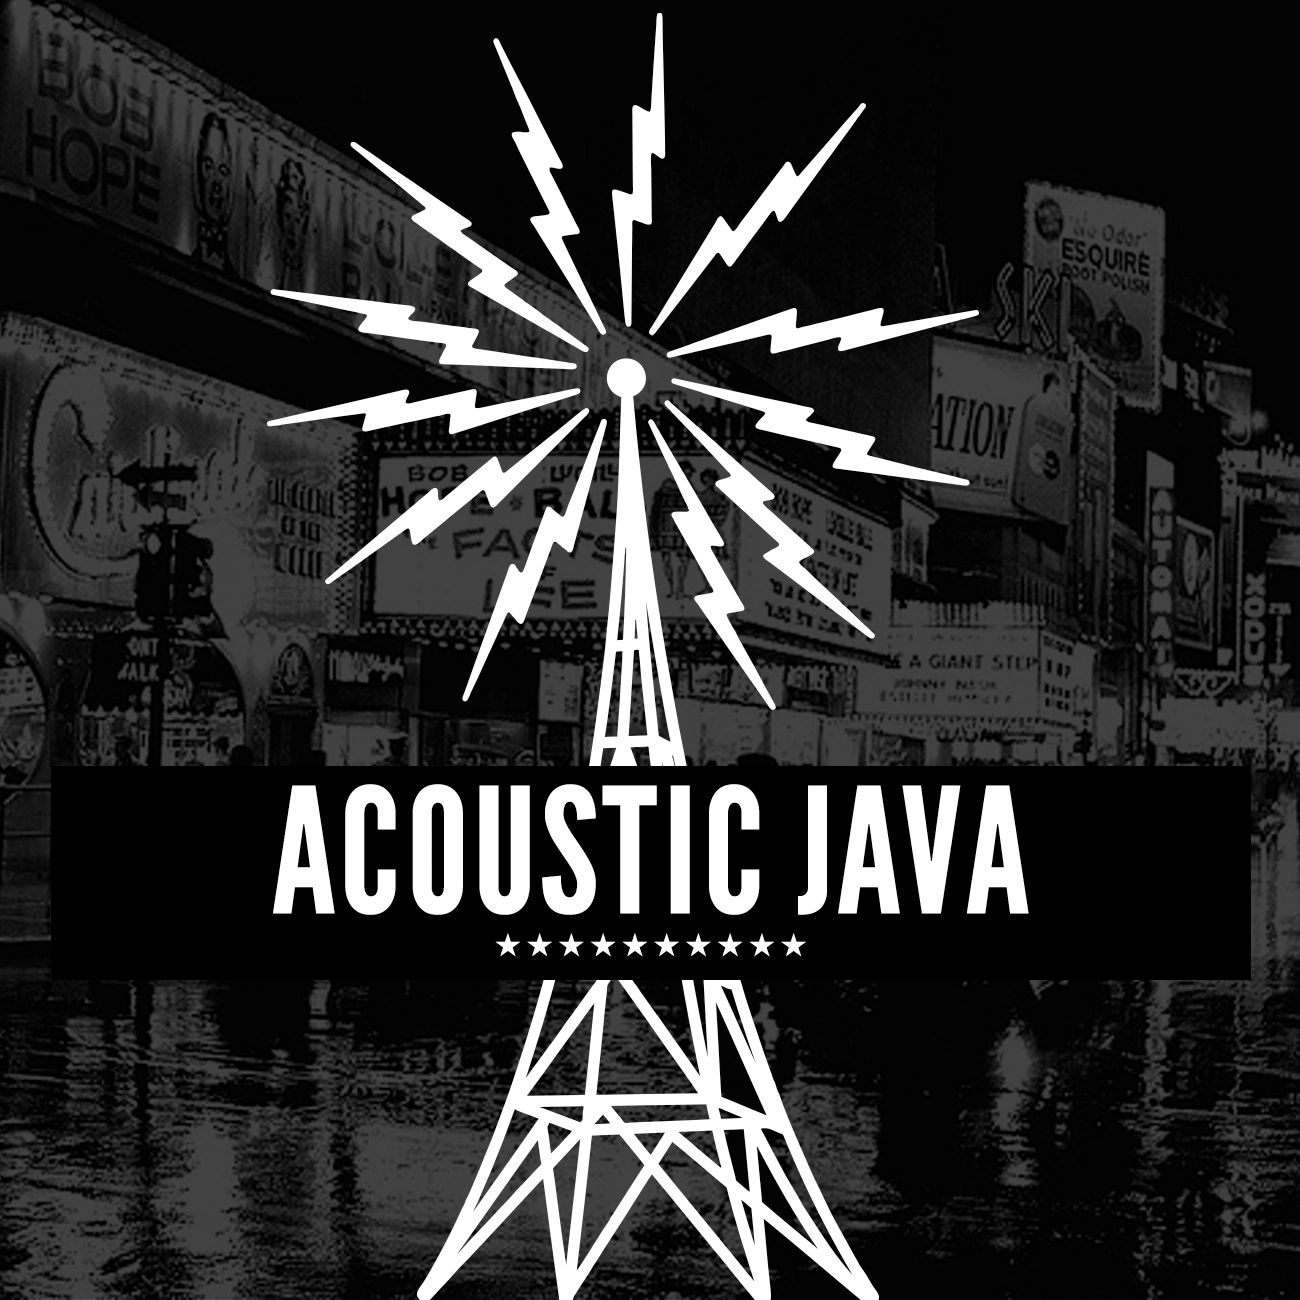 Acoustic Java graphic showing radio free europe tower signifying beacon